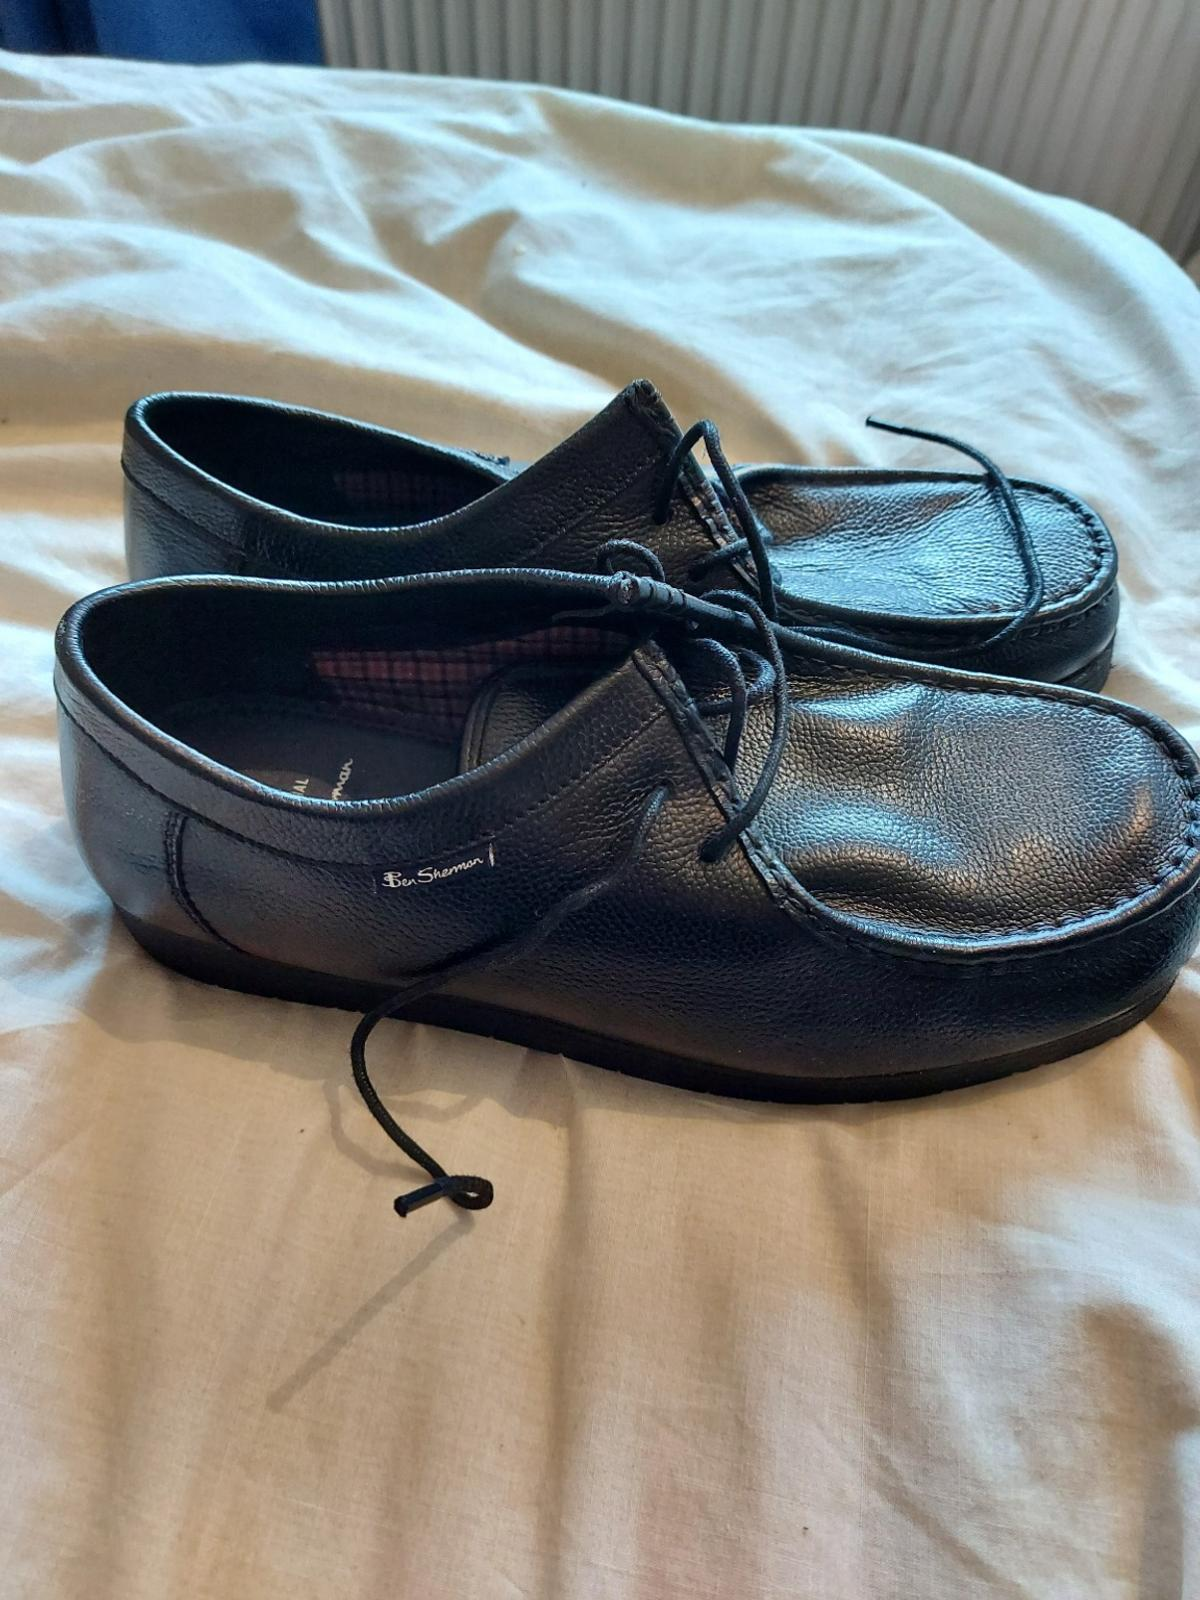 very good condition barely used